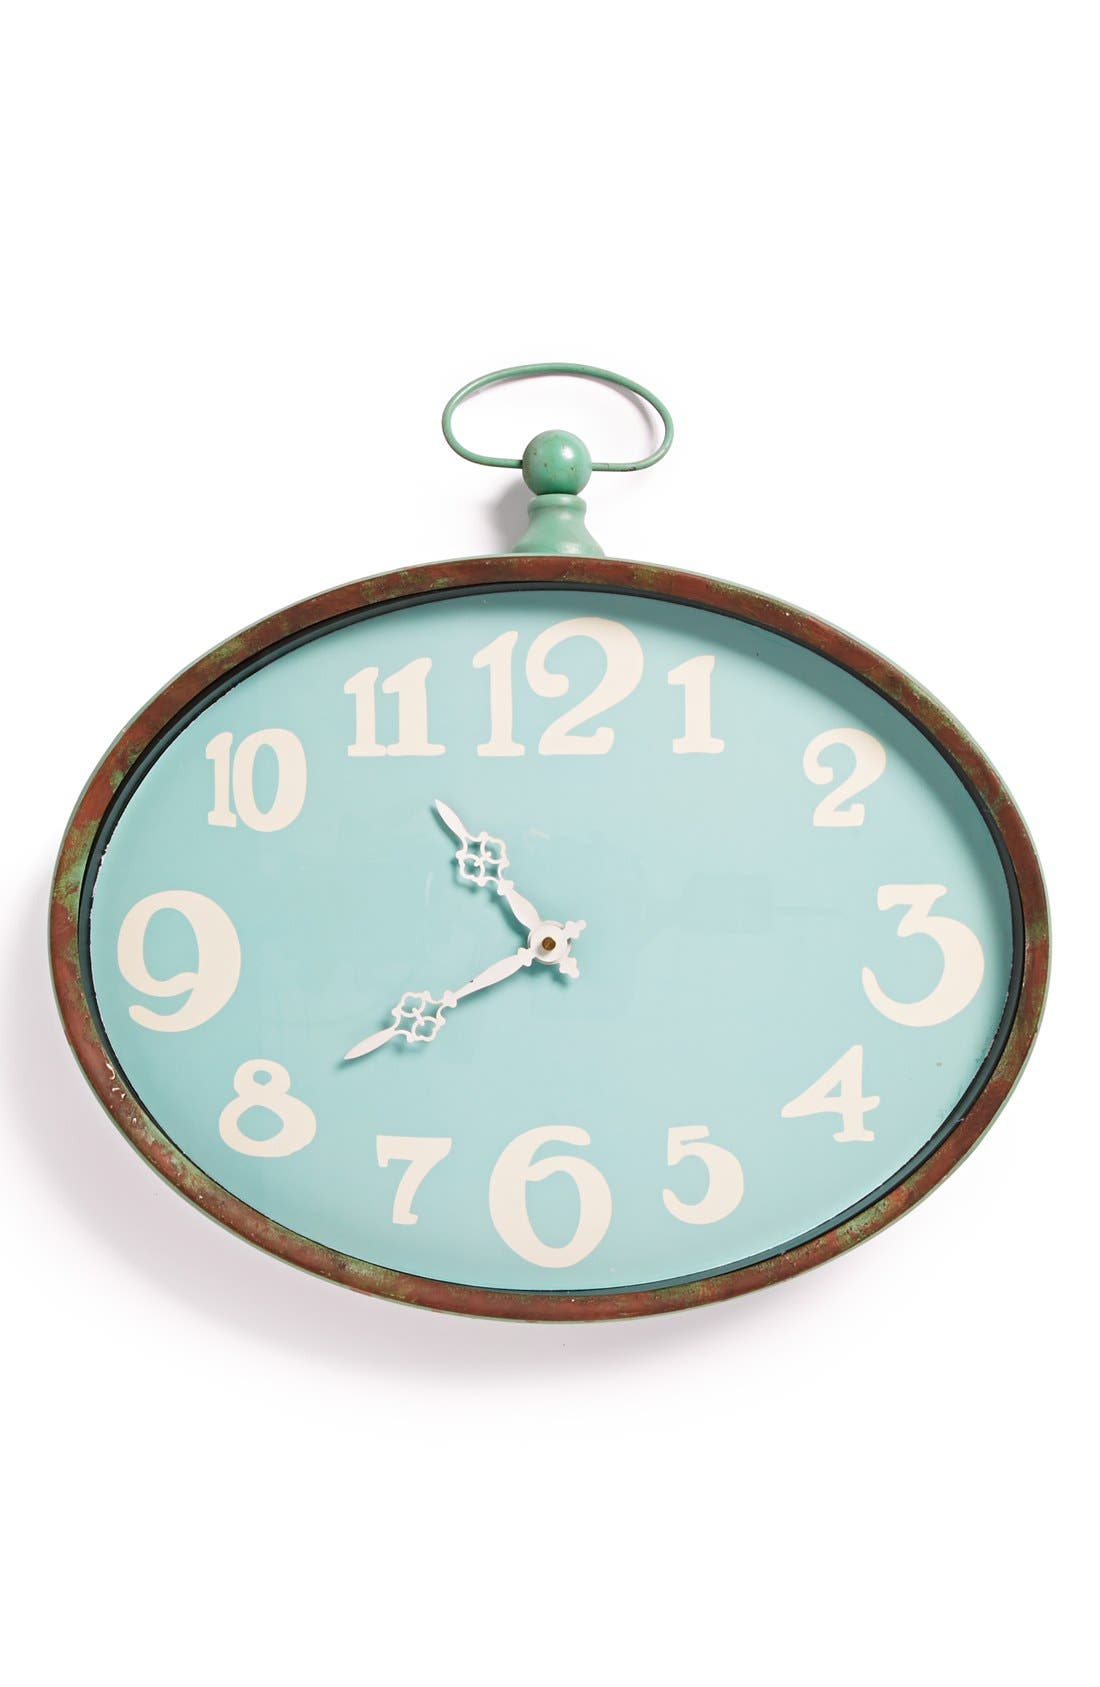 Main Image - Foreside Oval Wall Clock